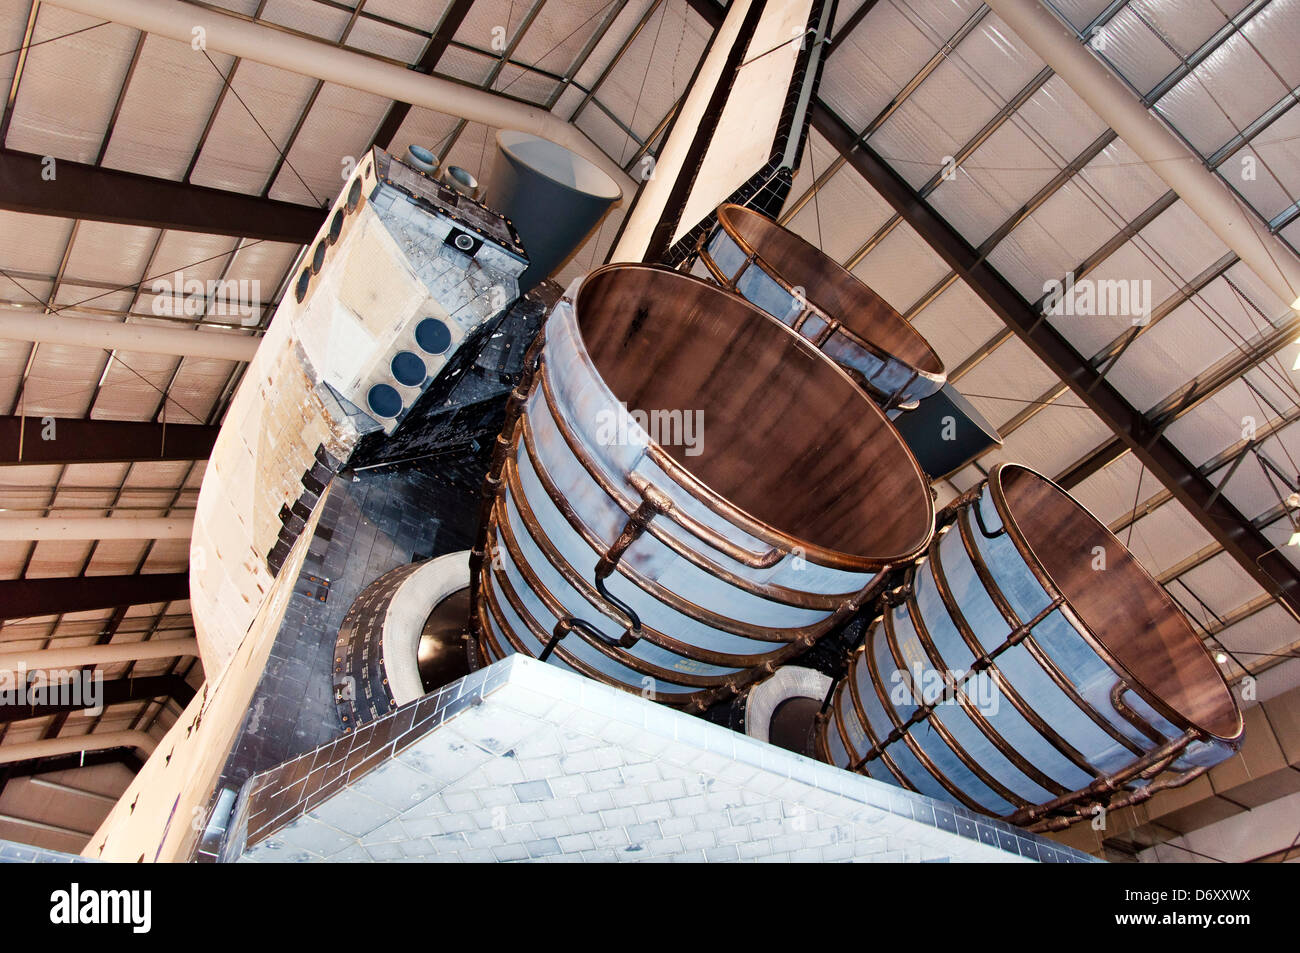 Space Shuttle Endeavour, California Science Center in Los Angeles - Stock Image